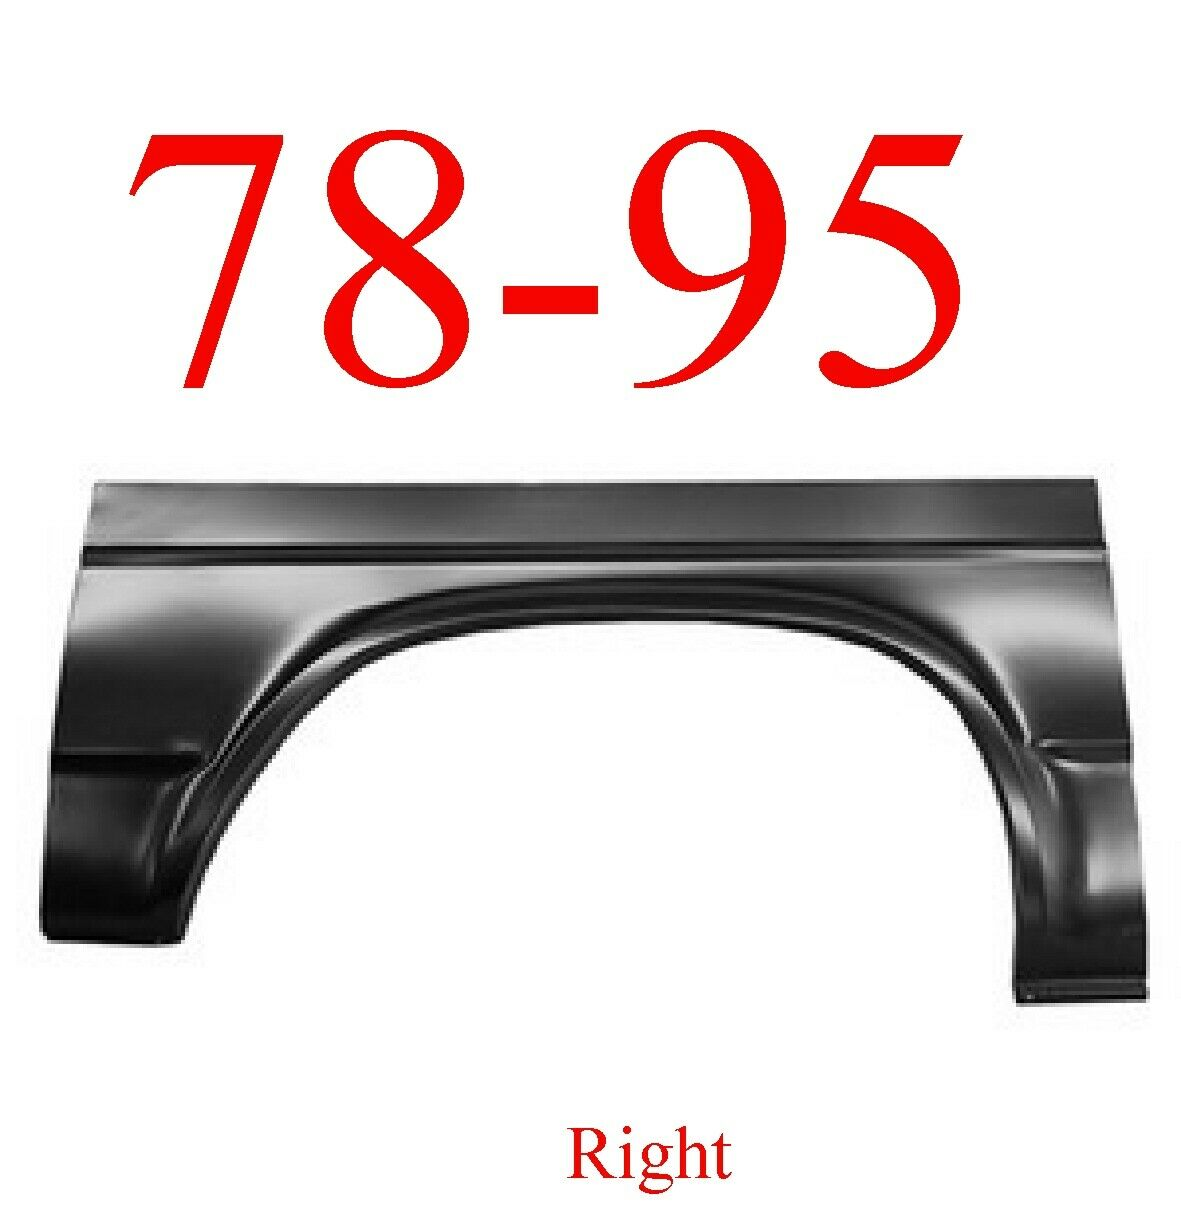 78-95 Chevy Van Right Rear Arch Panel